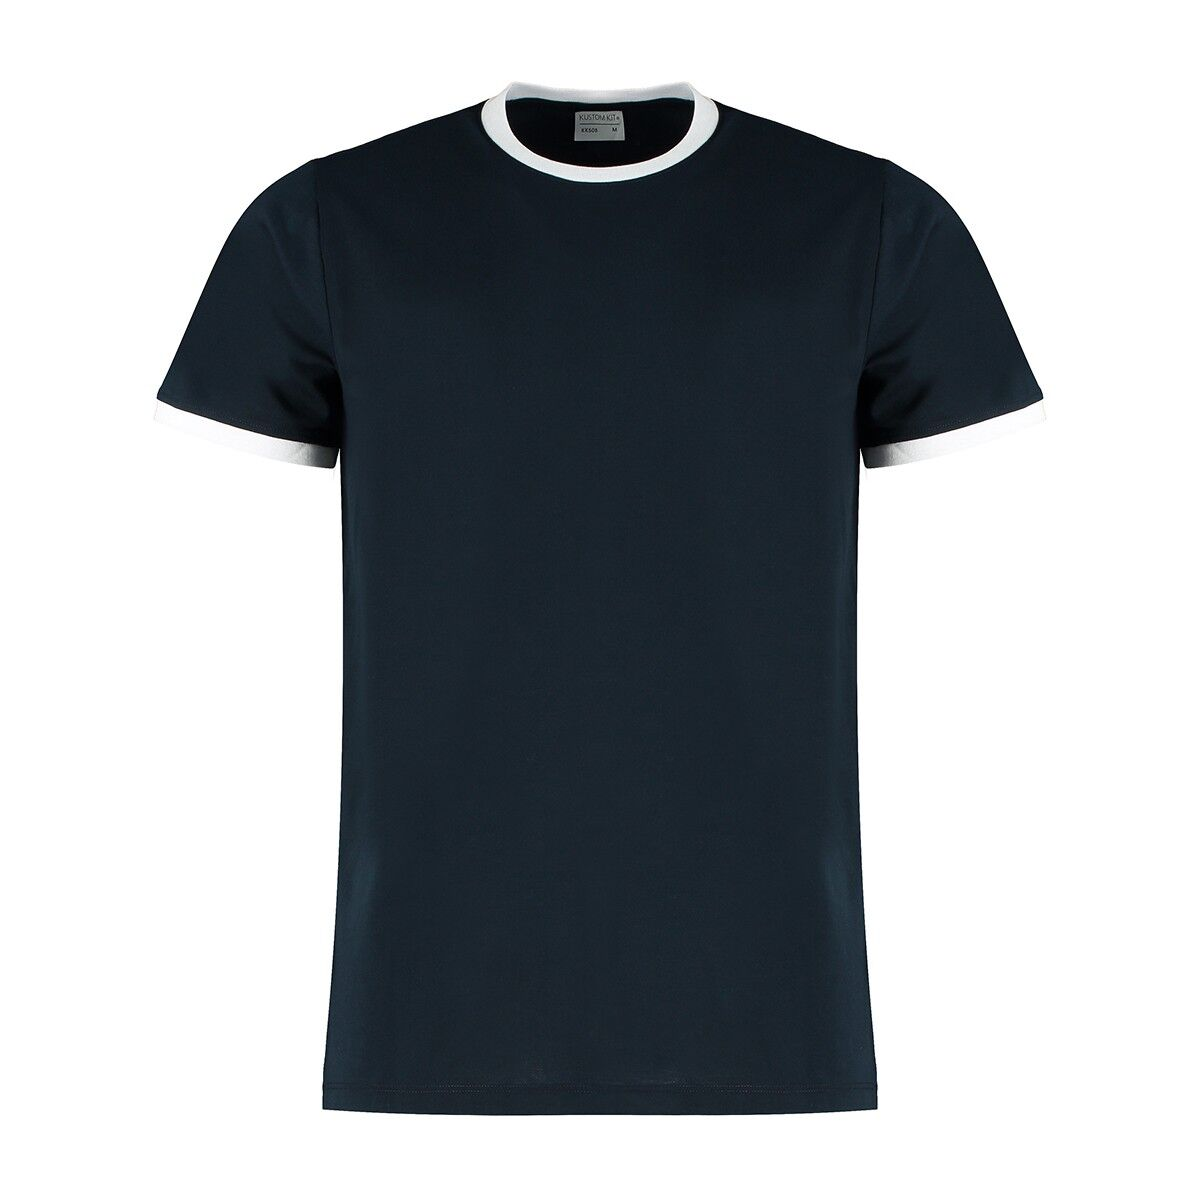 Contrast Ring Tee in Navy White